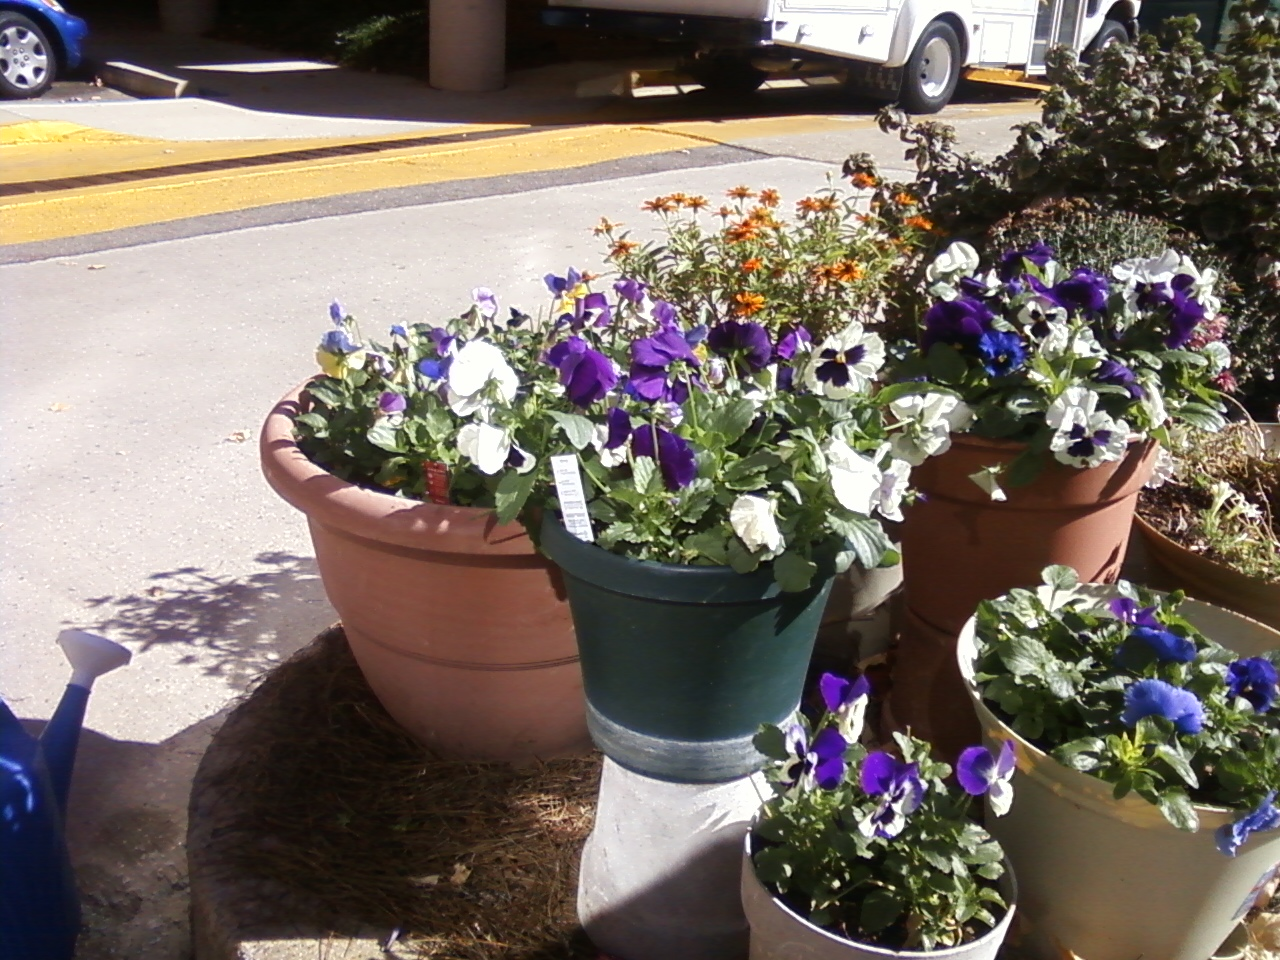 Same location as the petunias had been, but after they died out. Lots of containers added to that location. Behind the pansies are some orange zinnias, and a pot of Chrysanthemums.